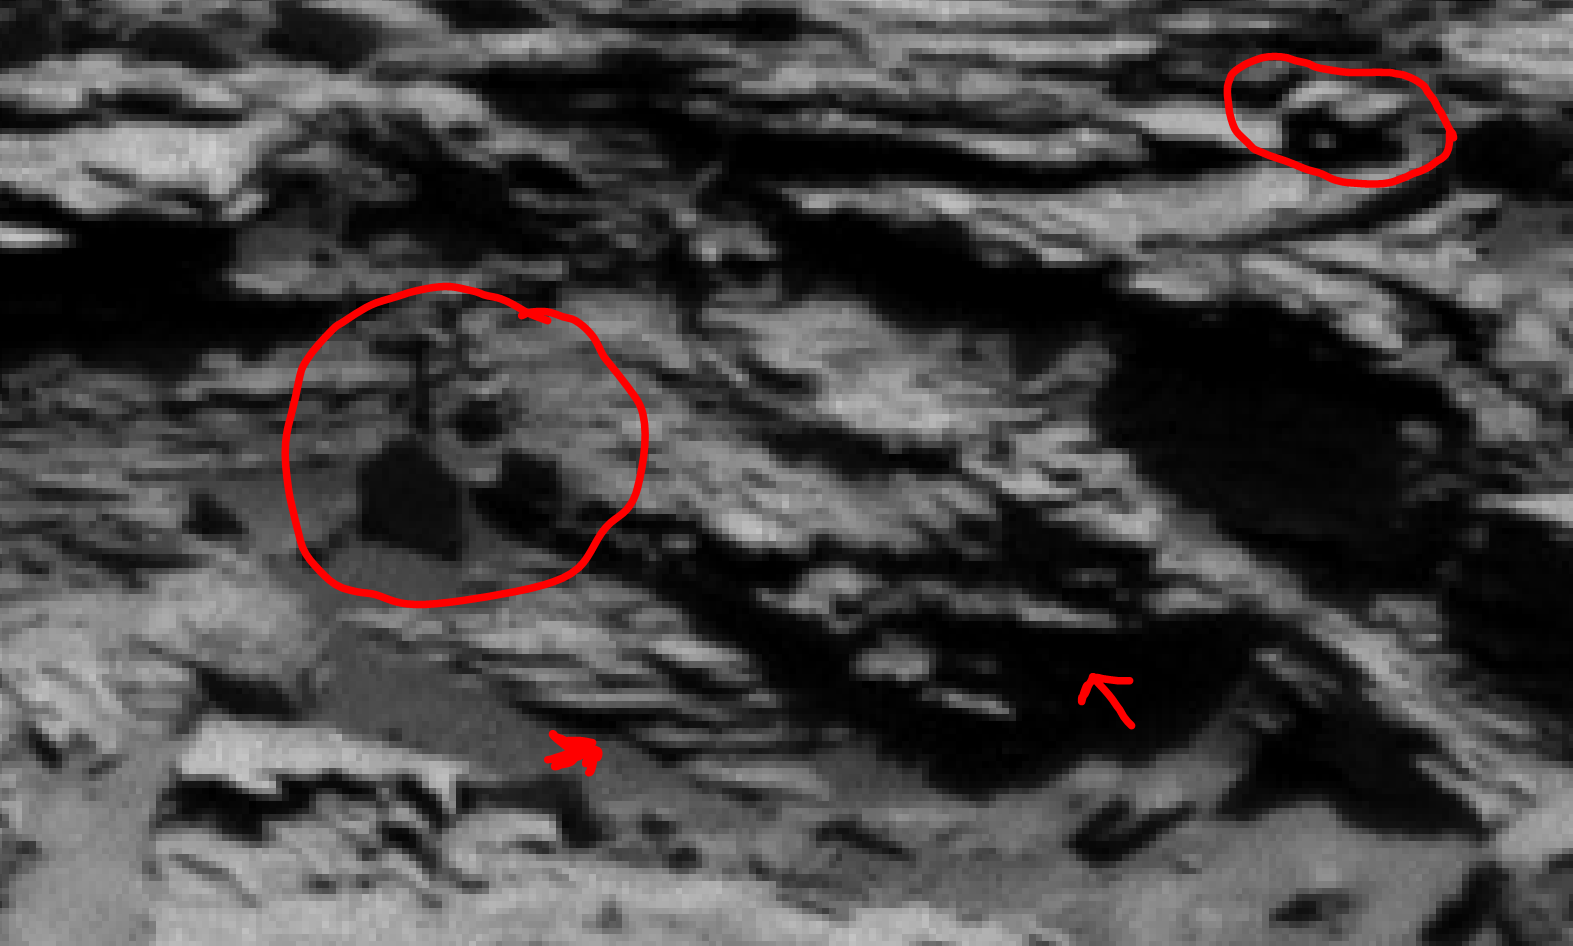 mars sol 1301 anomaly-artifacts 1a was life on mars